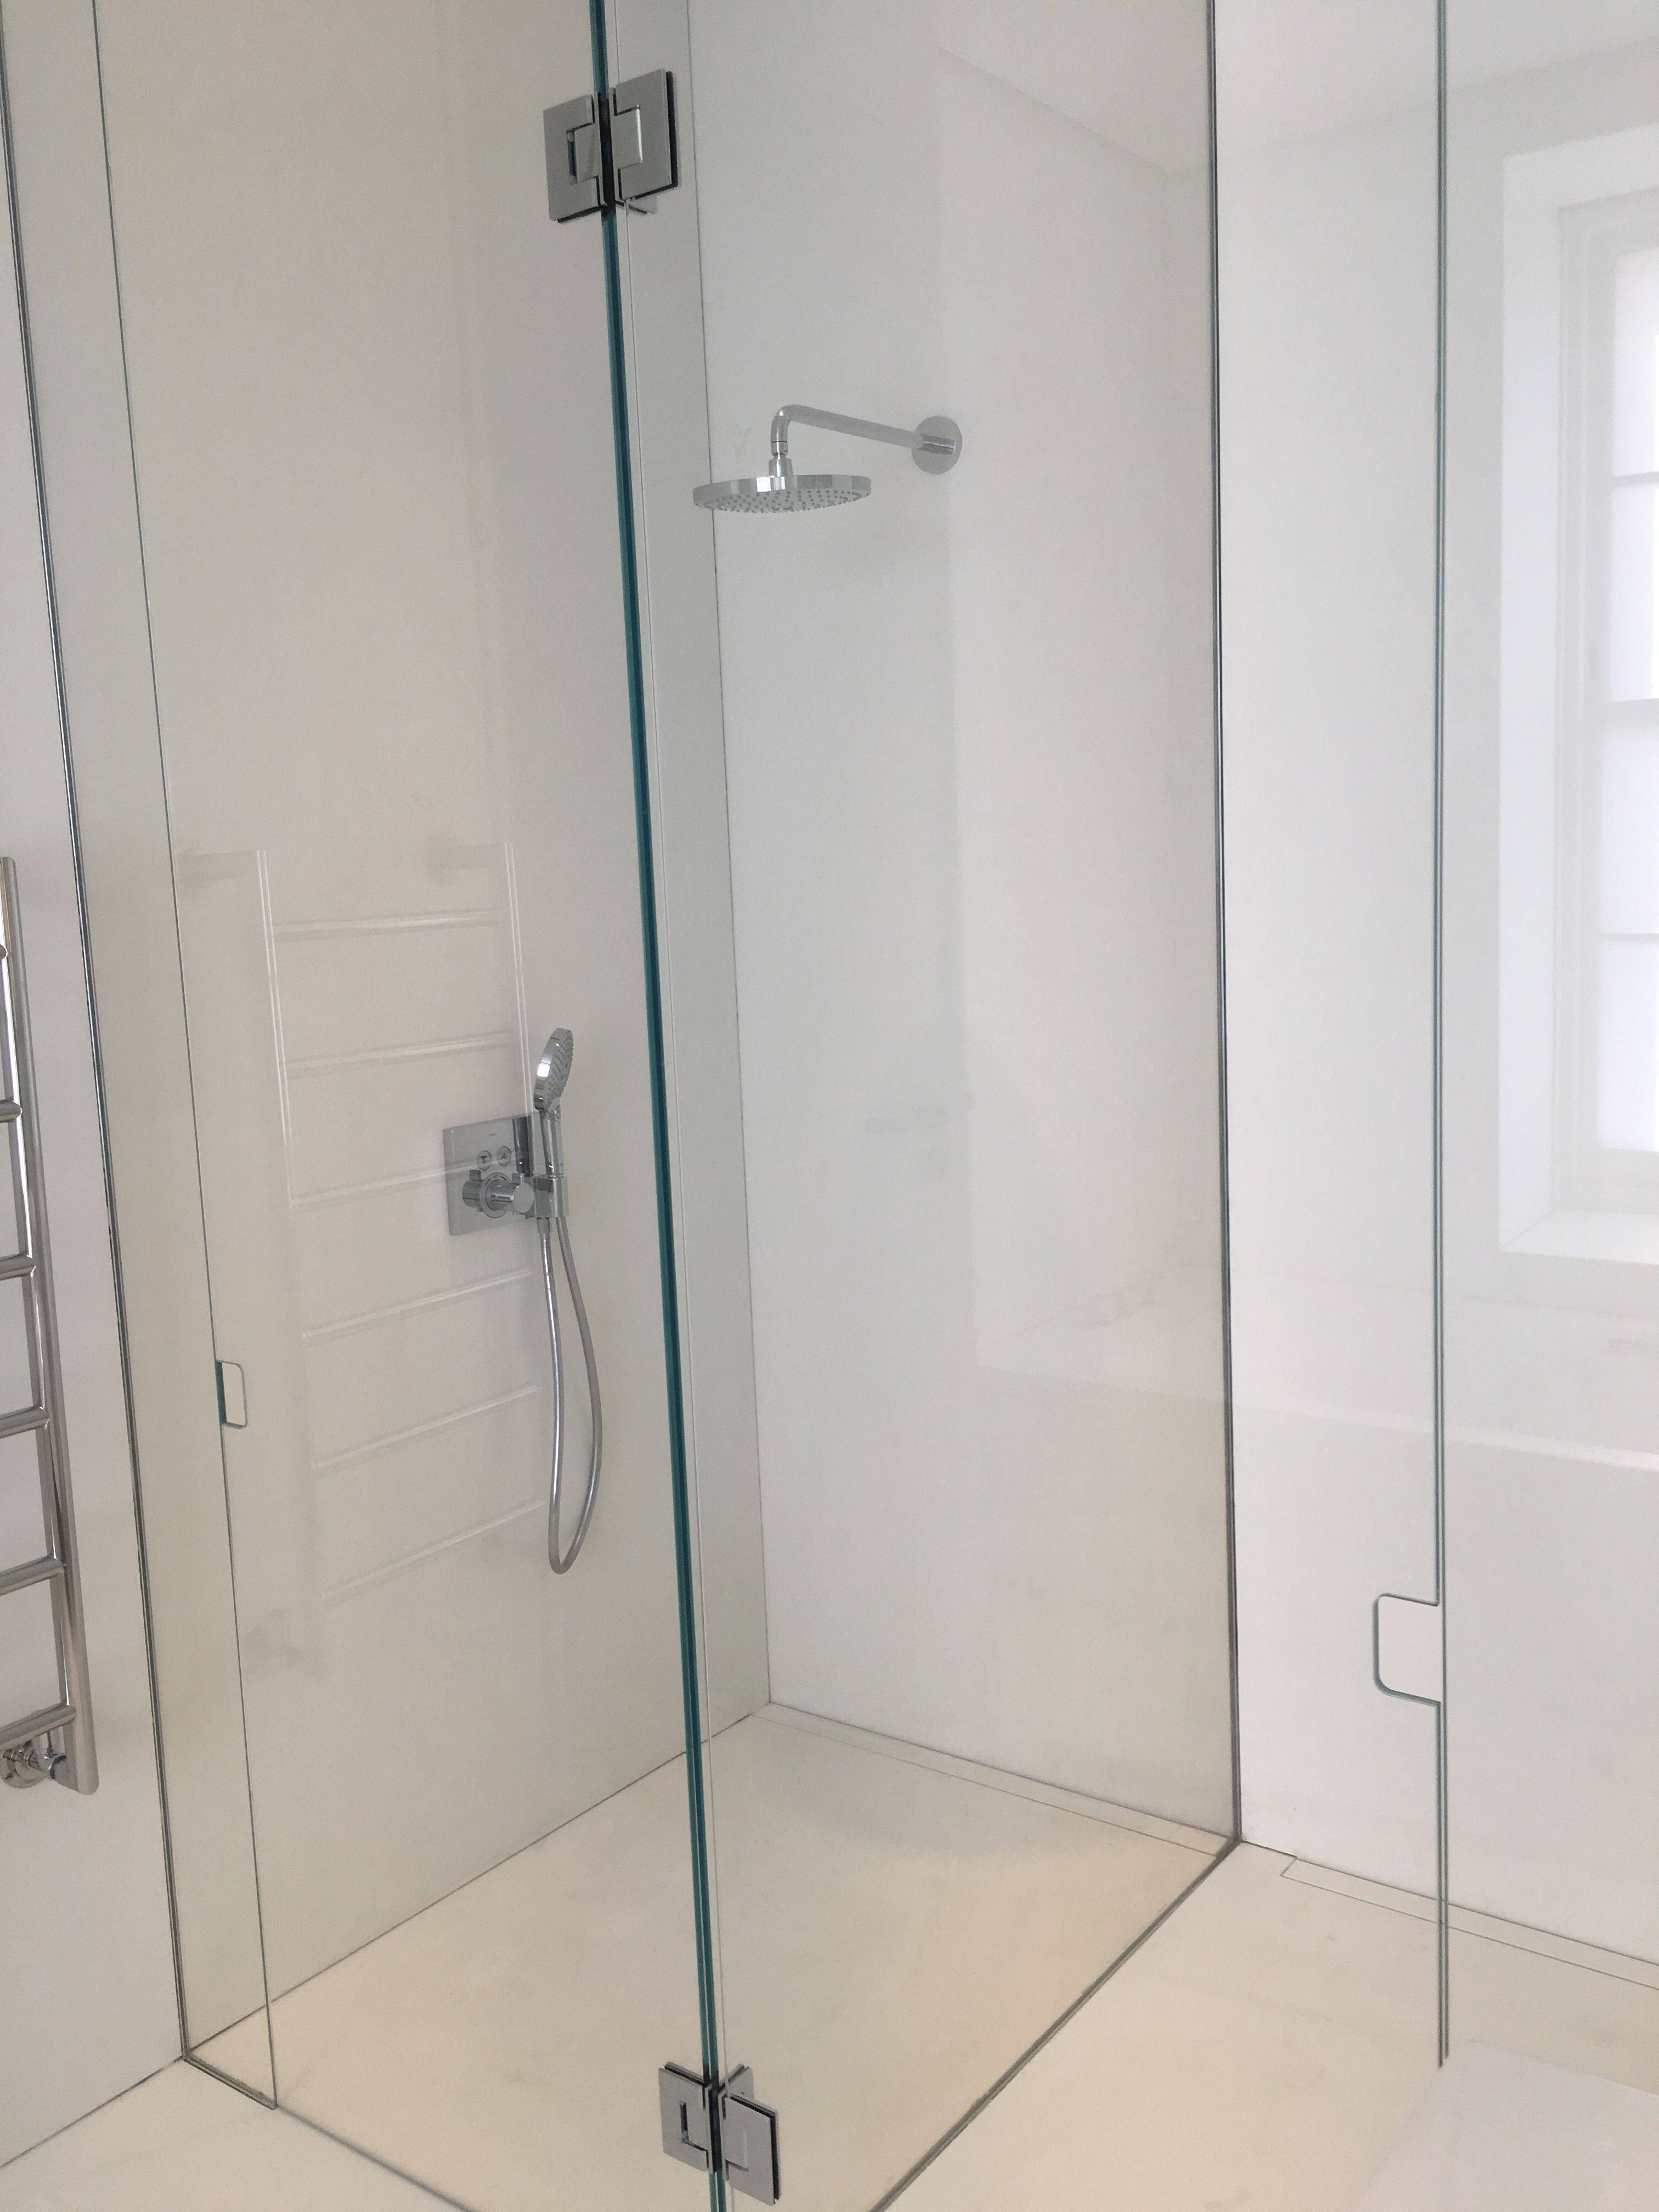 Frameless Glass Shower And Wc Enclosure Doors Hinged With Double T Hinge From Dividing Panel 3m High In Custom Glass Glass Office Partitions Glass Suppliers